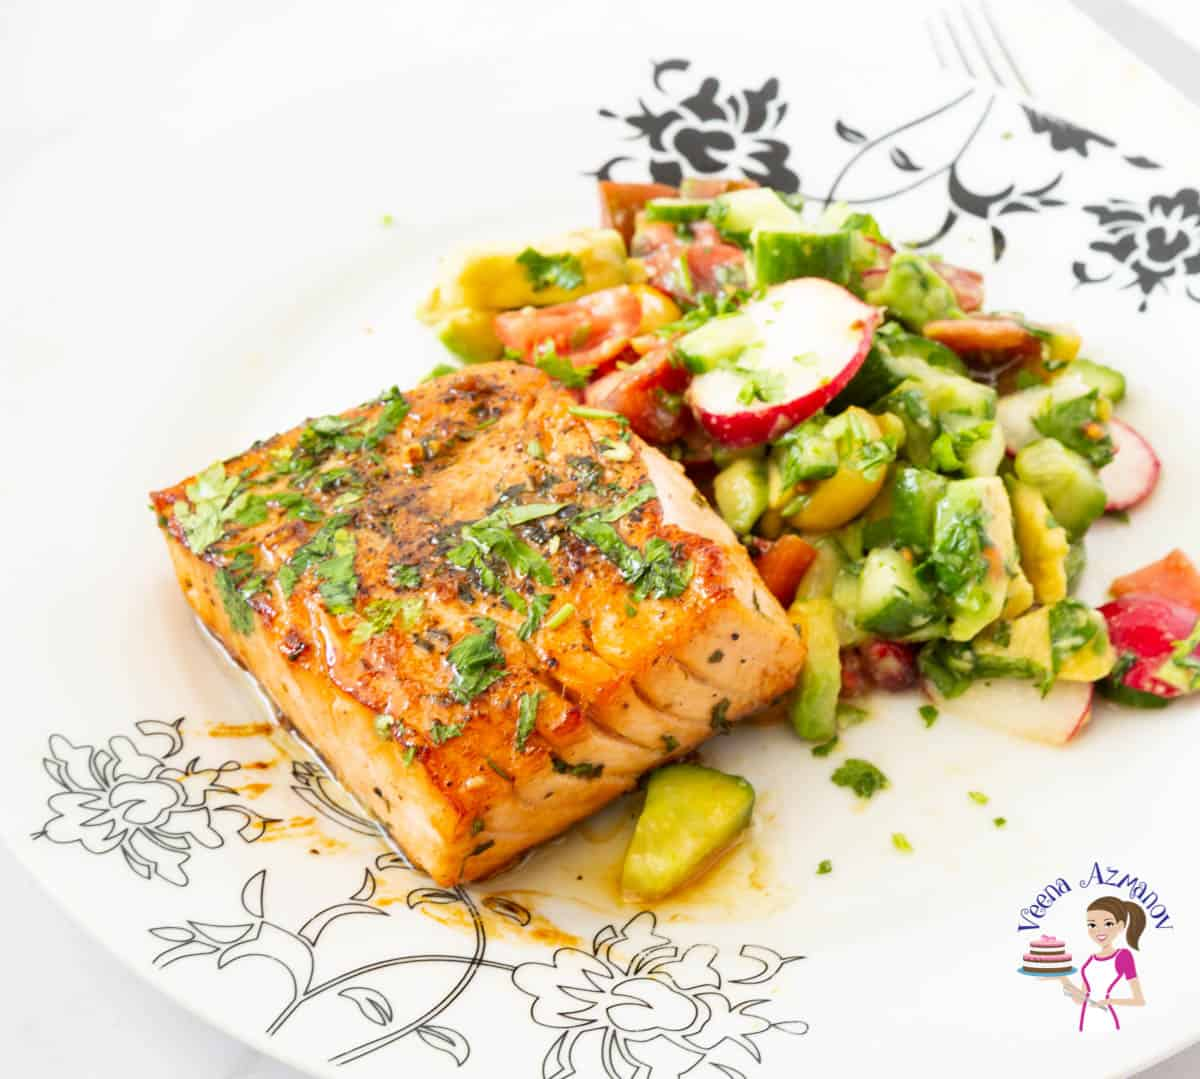 A plate with salmon and avocado salad